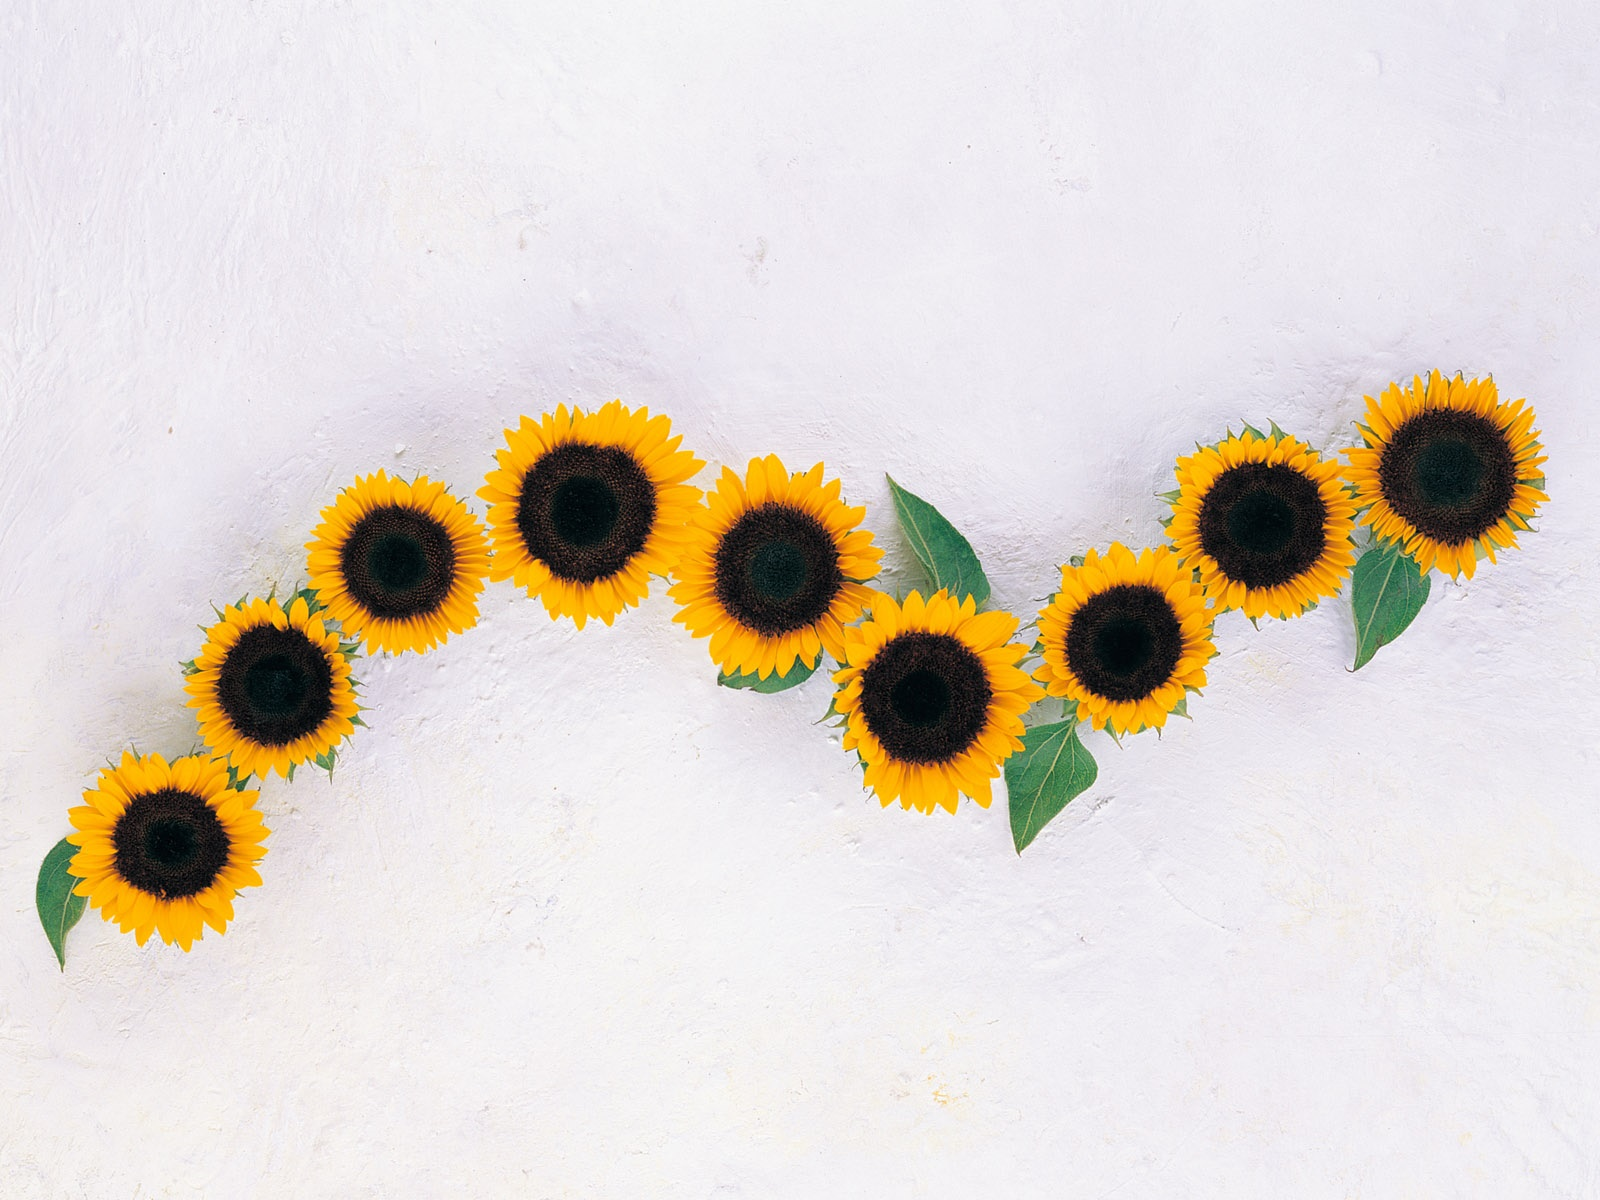 Sunflowers, white background 1600x1200 wallpaper